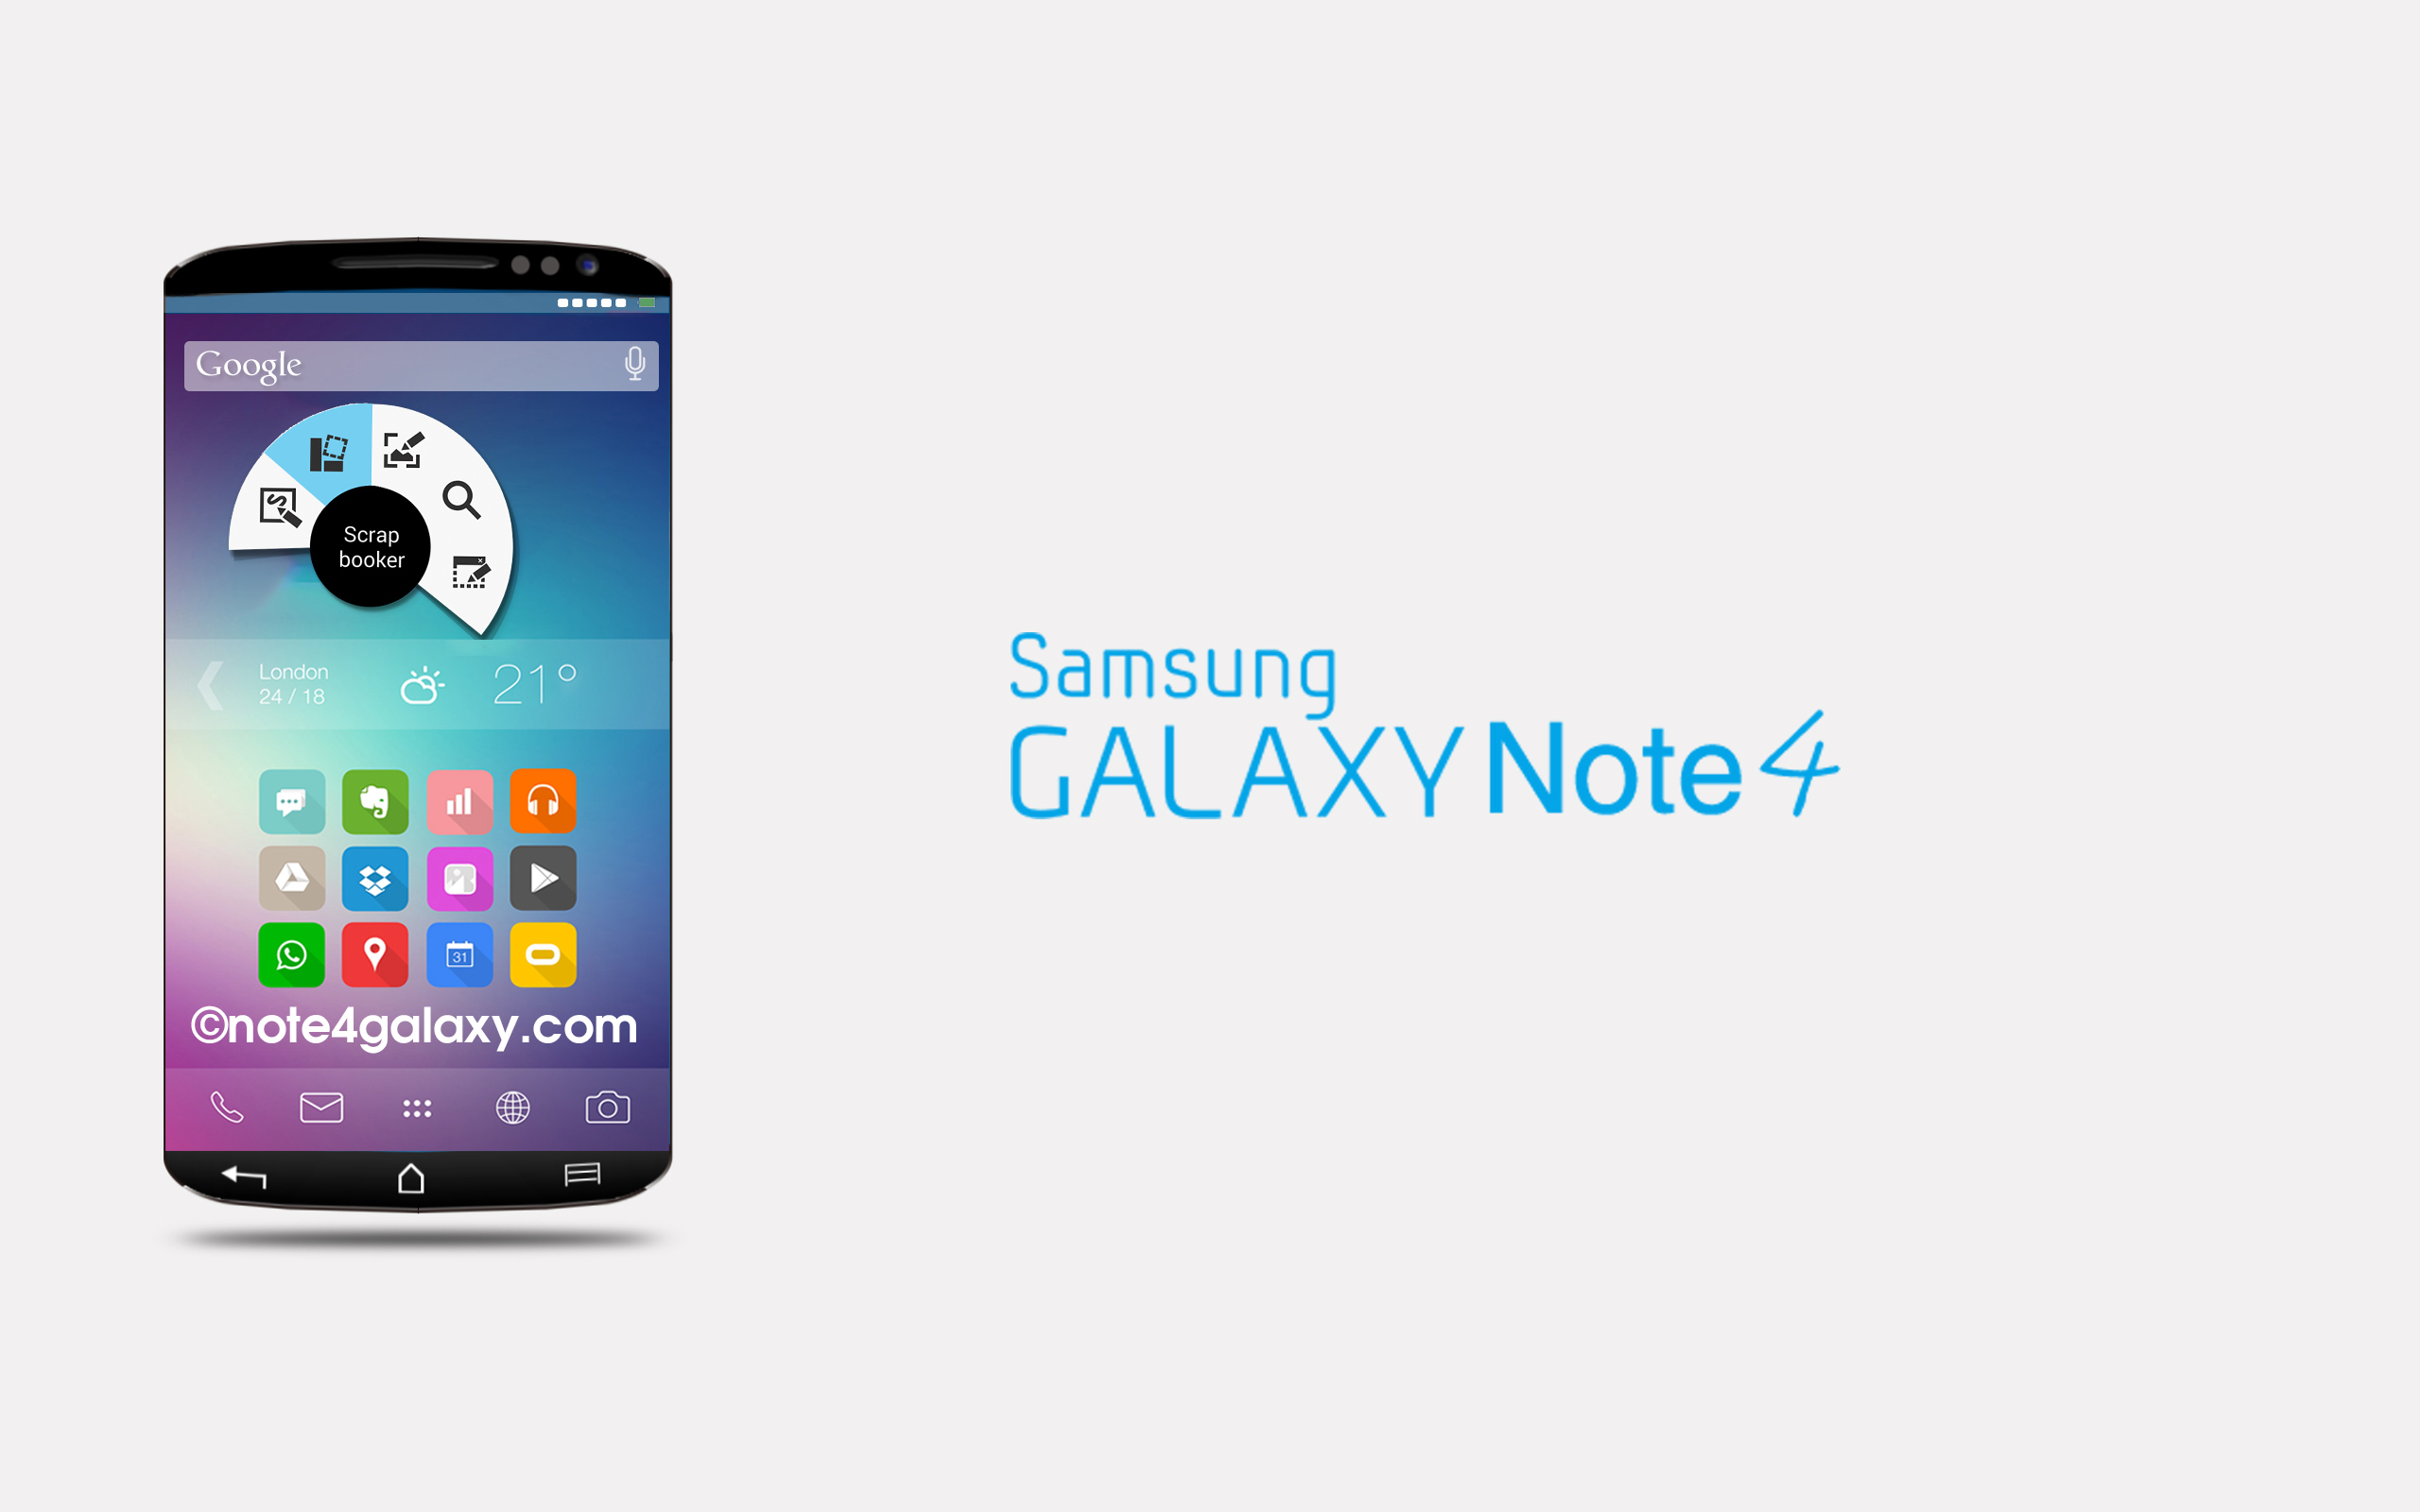 Unlock galaxy note 4, be khoa galaxy note 4, mo mang galaxy note 4